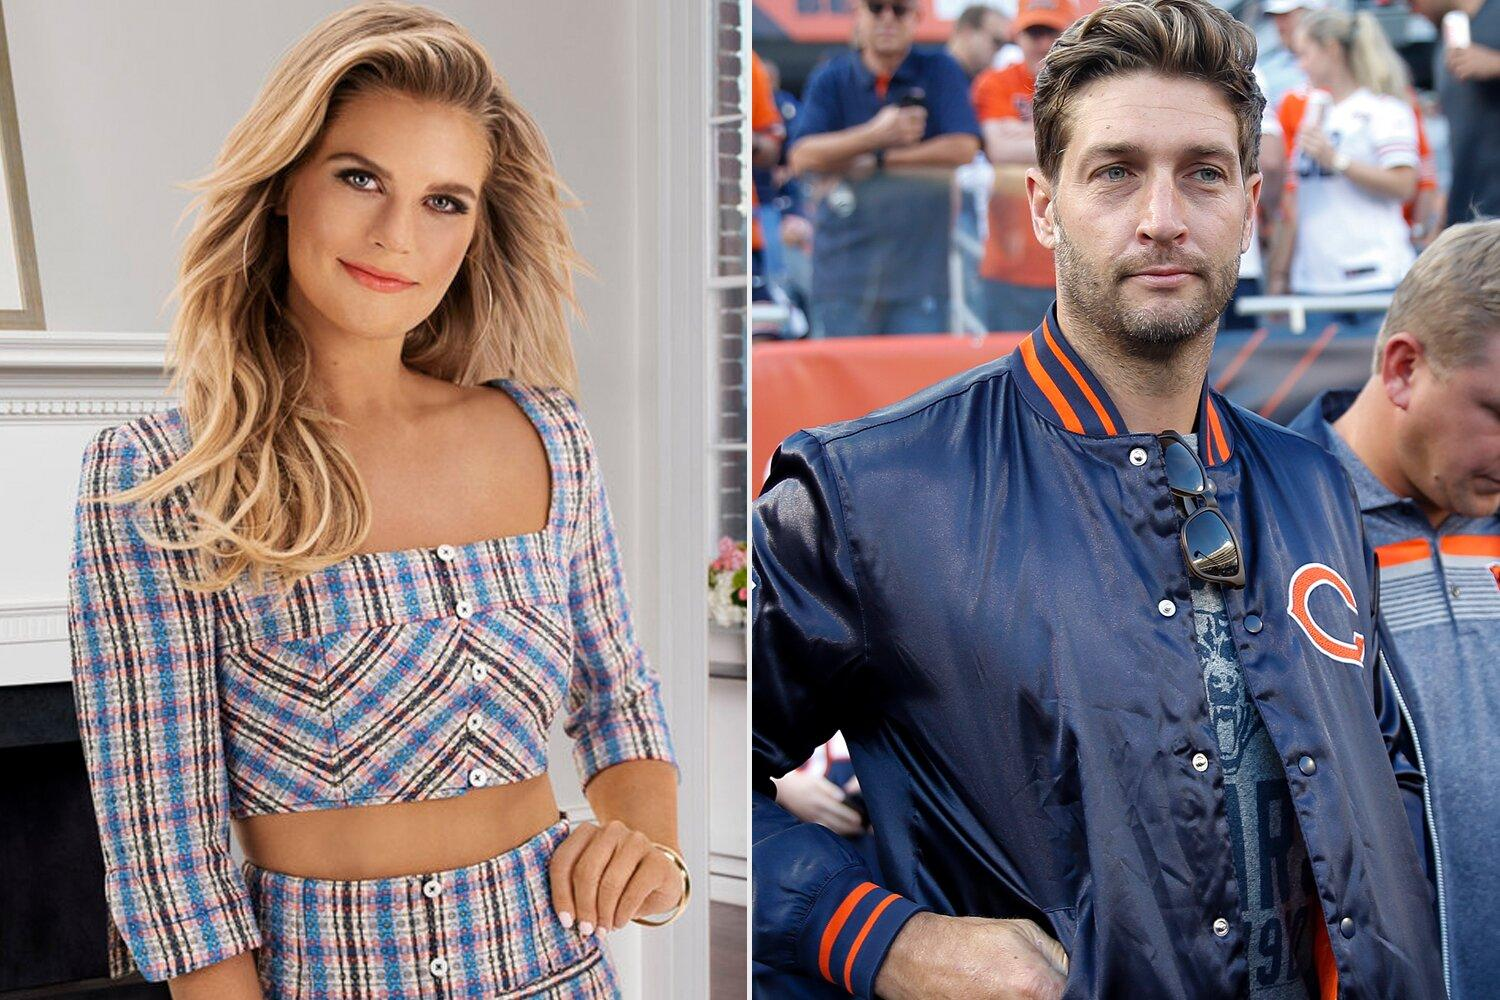 Southern Charm's Madison LeCroy Shares Her Old Texts with Jay Cutler: 'Too Bad It Didn't Work Out'